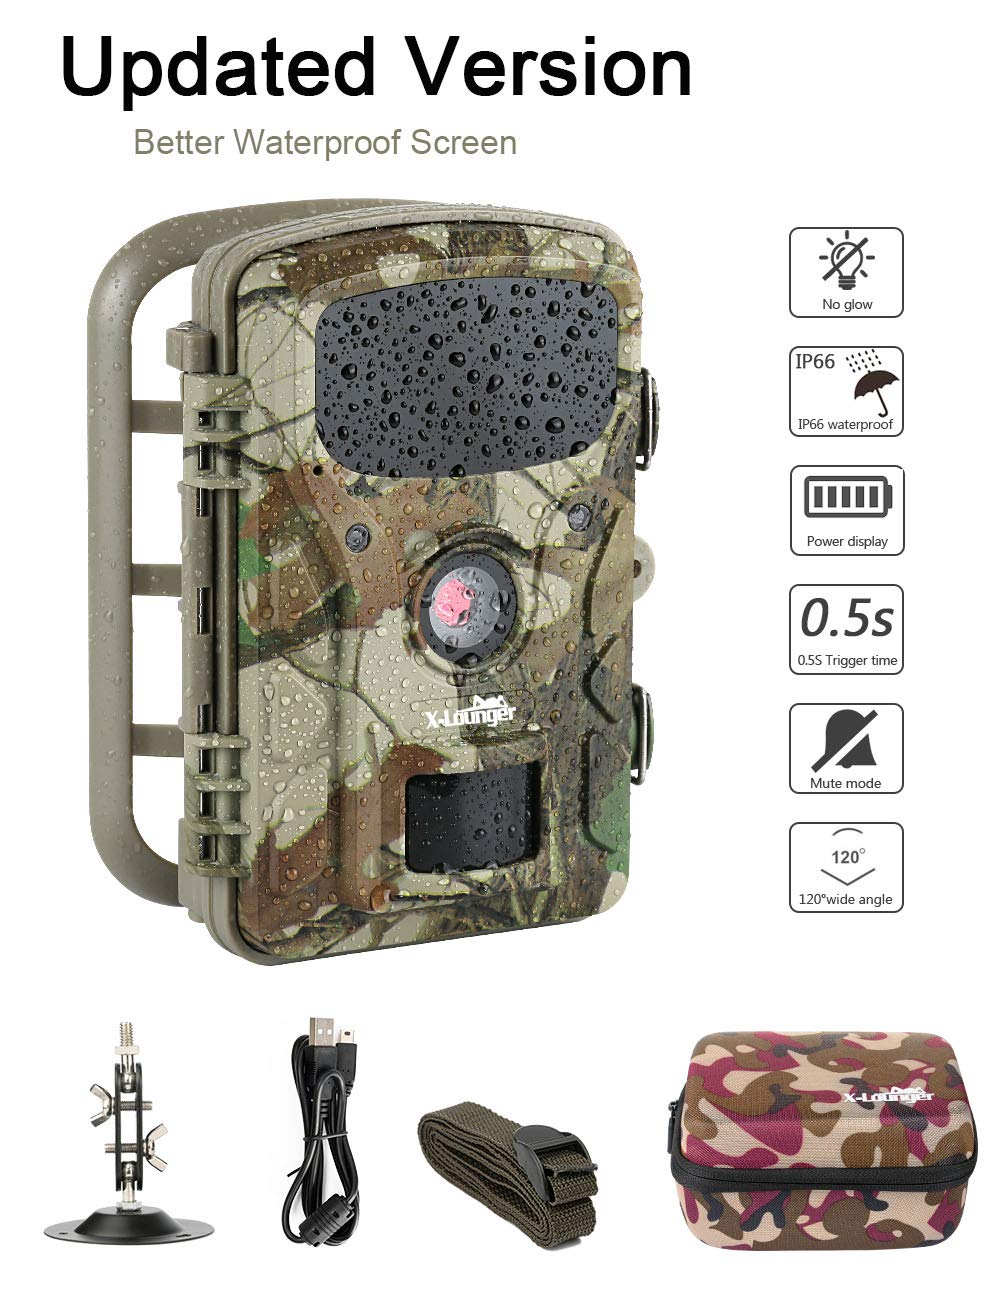 Game Trail Camera,2018 New Hunting Camera 1080P 12MP with 2.4in LCD Screen No Glow Black Infrared Night Vision 0.5s Trigger Speed IP66 Waterproof for Wildlife Hunting Monitoring and Farm Security X-Lounger